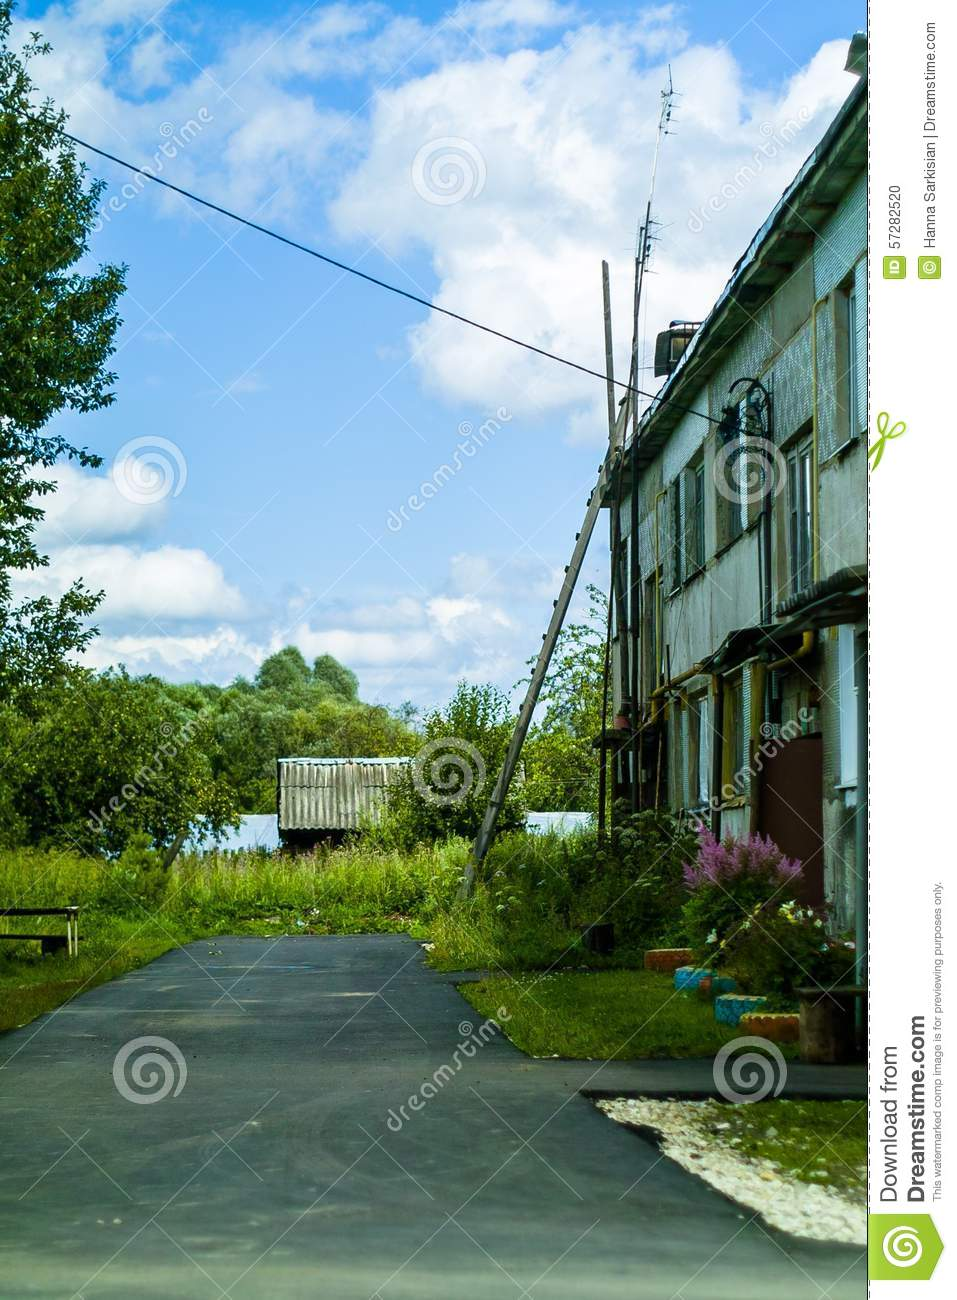 Stock Photo Old Houses In Russia Image 57282520